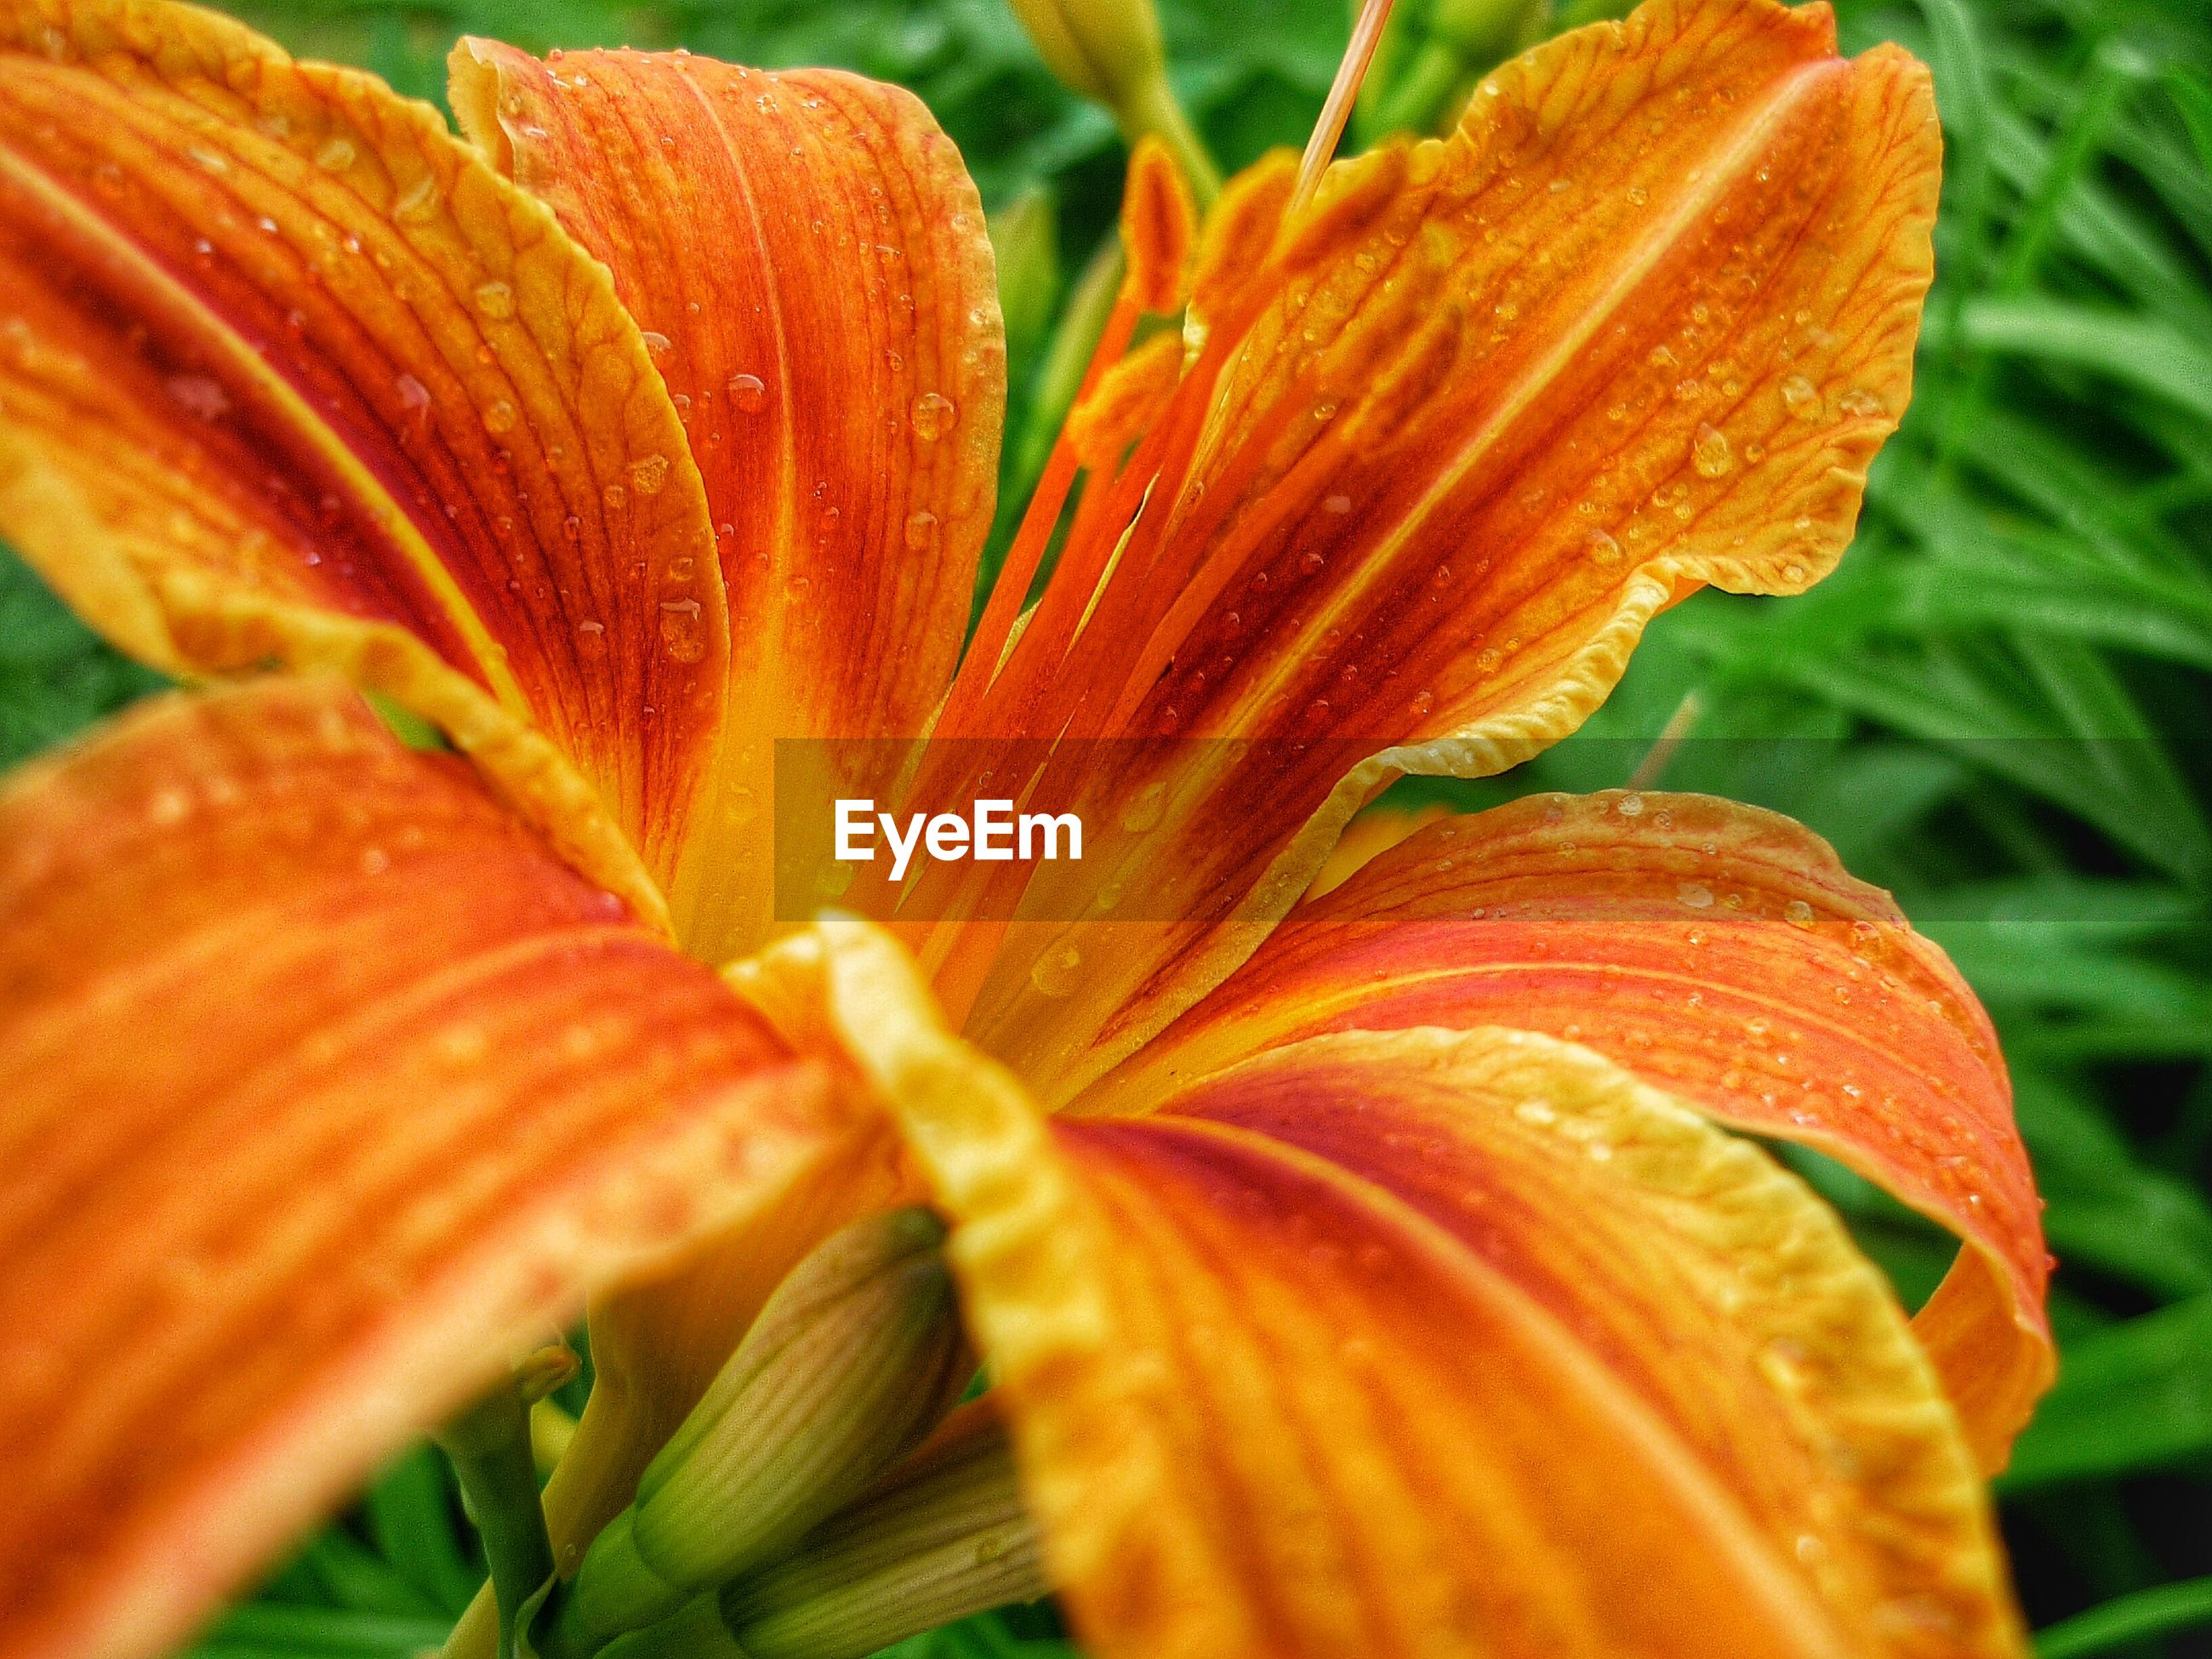 freshness, flower, growth, fragility, close-up, flower head, petal, beauty in nature, nature, focus on foreground, stamen, orange color, plant, season, blooming, botany, in bloom, macro, pollen, selective focus, blossom, natural pattern, outdoors, day, no people, softness, extreme close-up